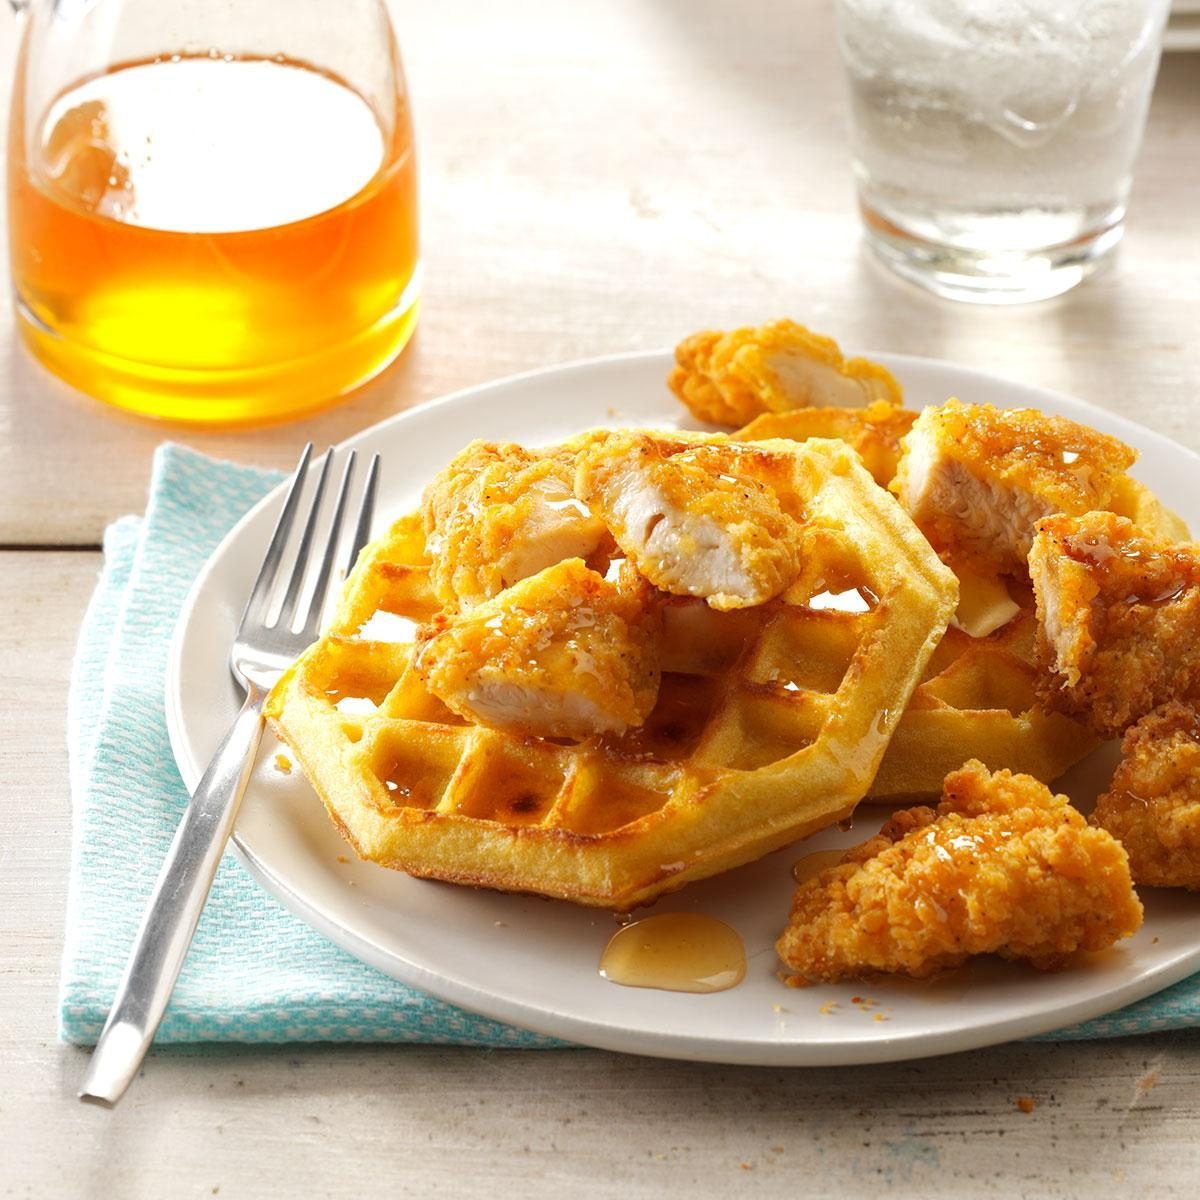 1990s: Chicken and Waffles